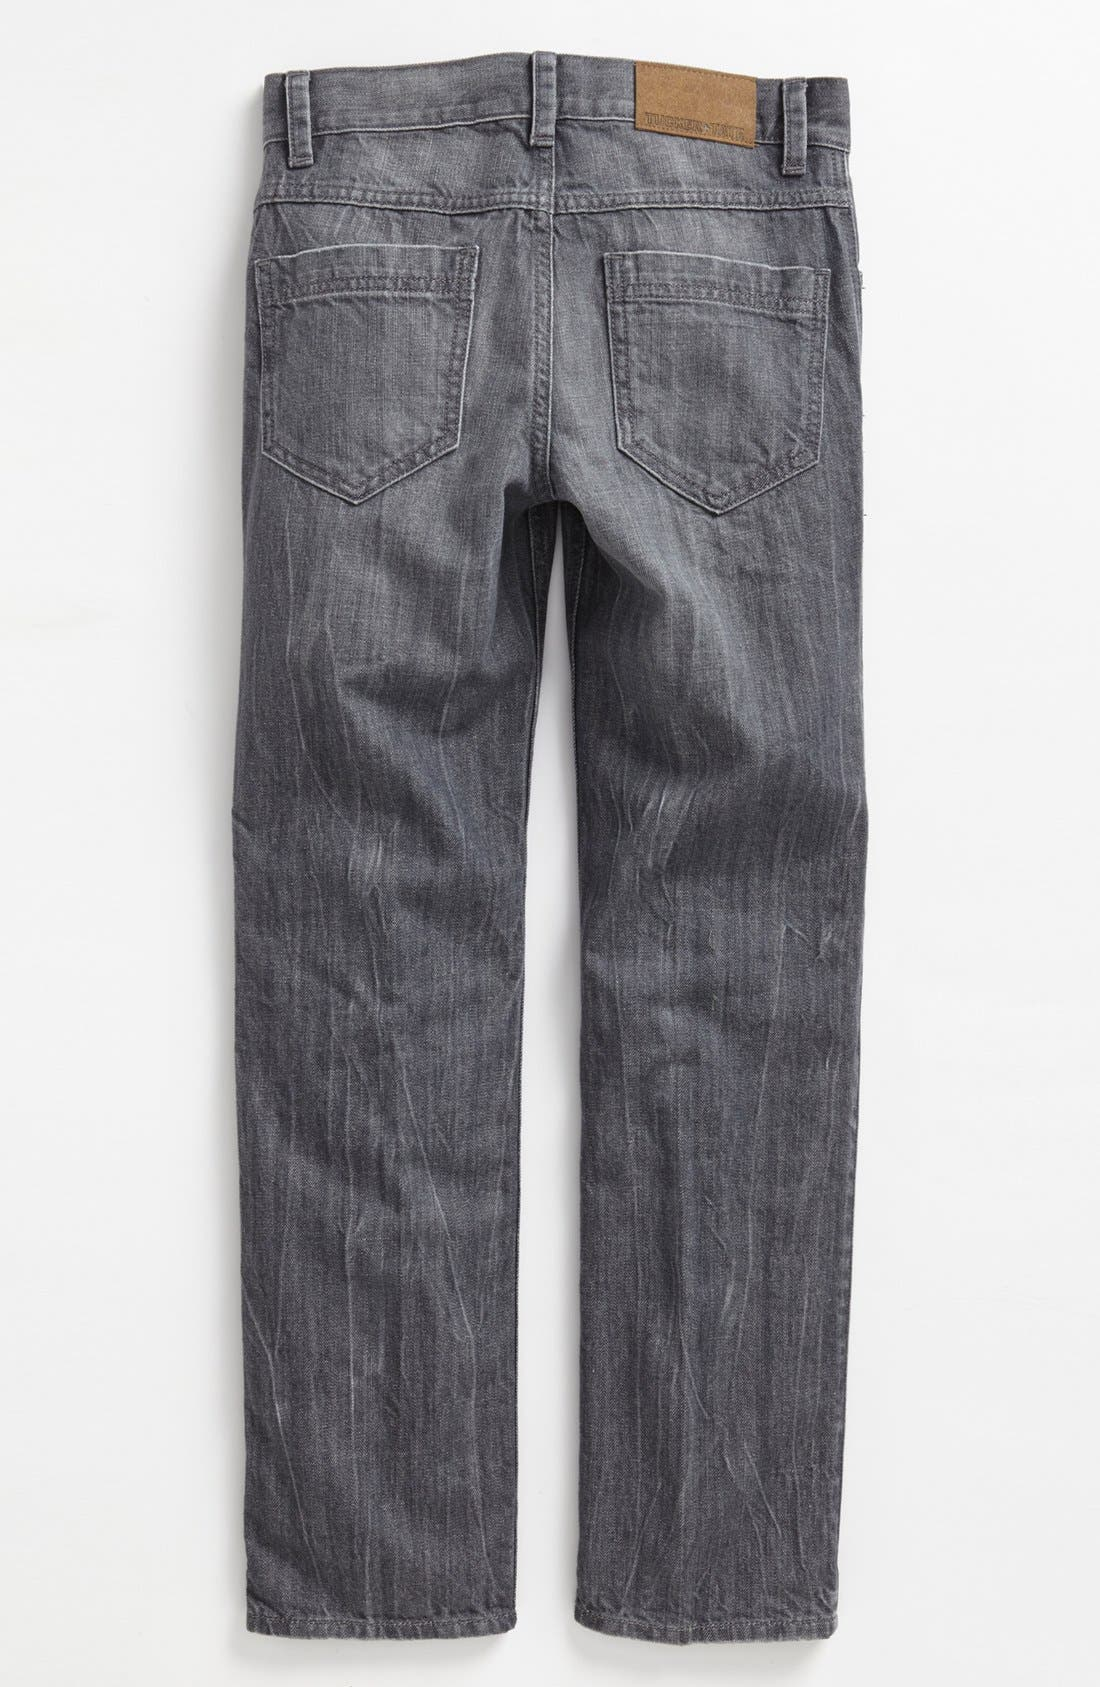 Alternate Image 1 Selected - Tucker + Tate 'Townsend' Jeans (Little Boys & Big Boys)